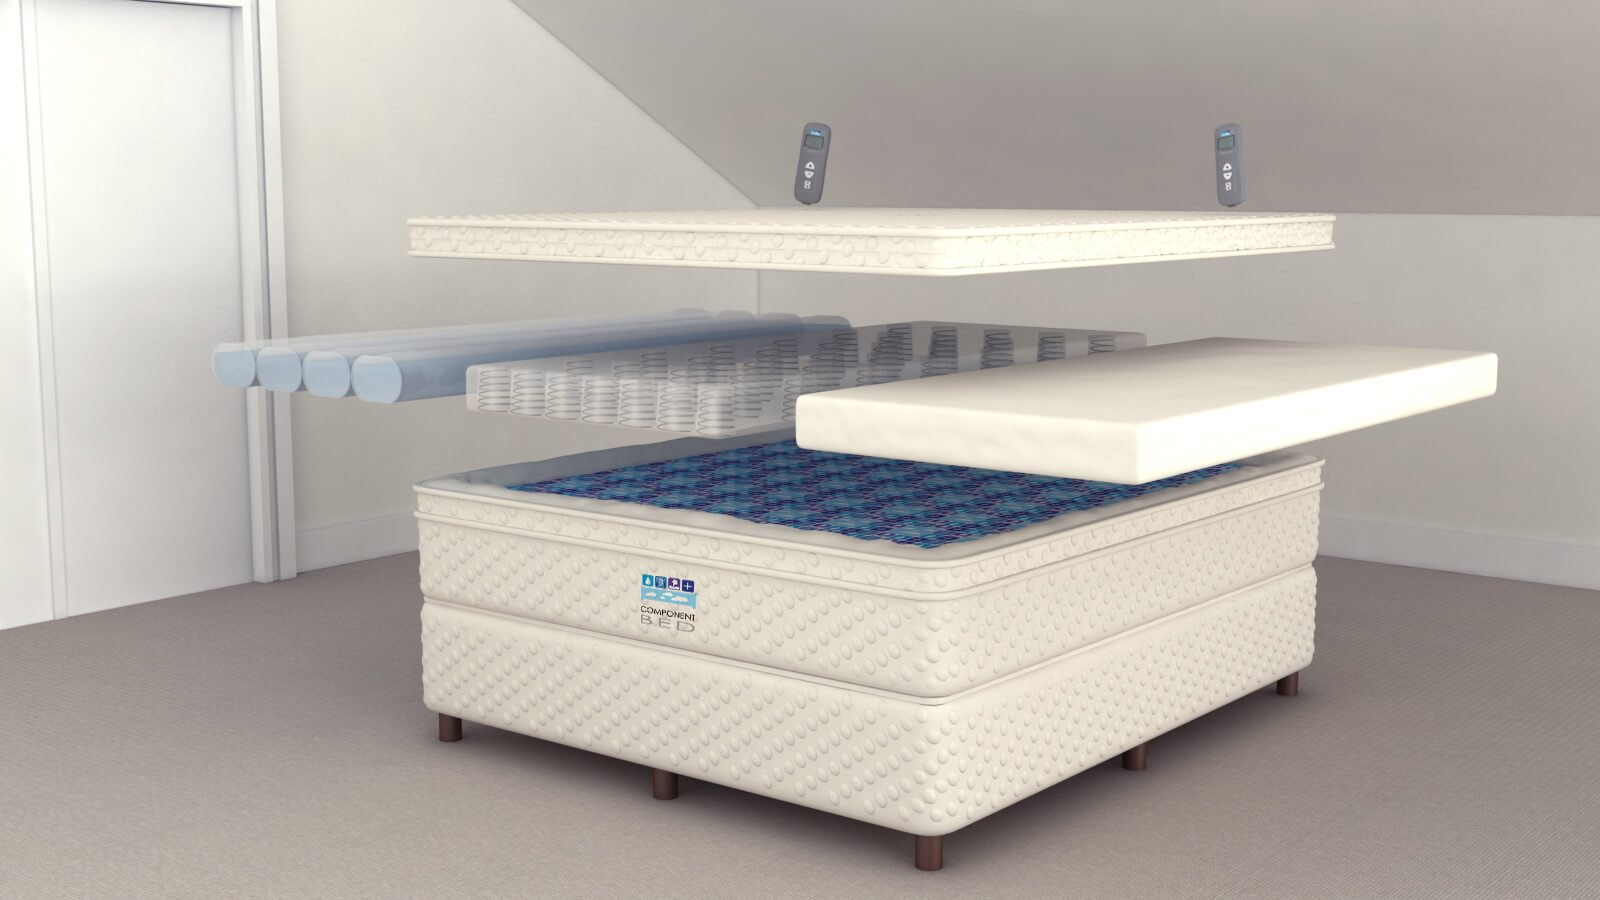 Cheap queen box springsbed frame for boxspring and for Cheap king size mattress near me